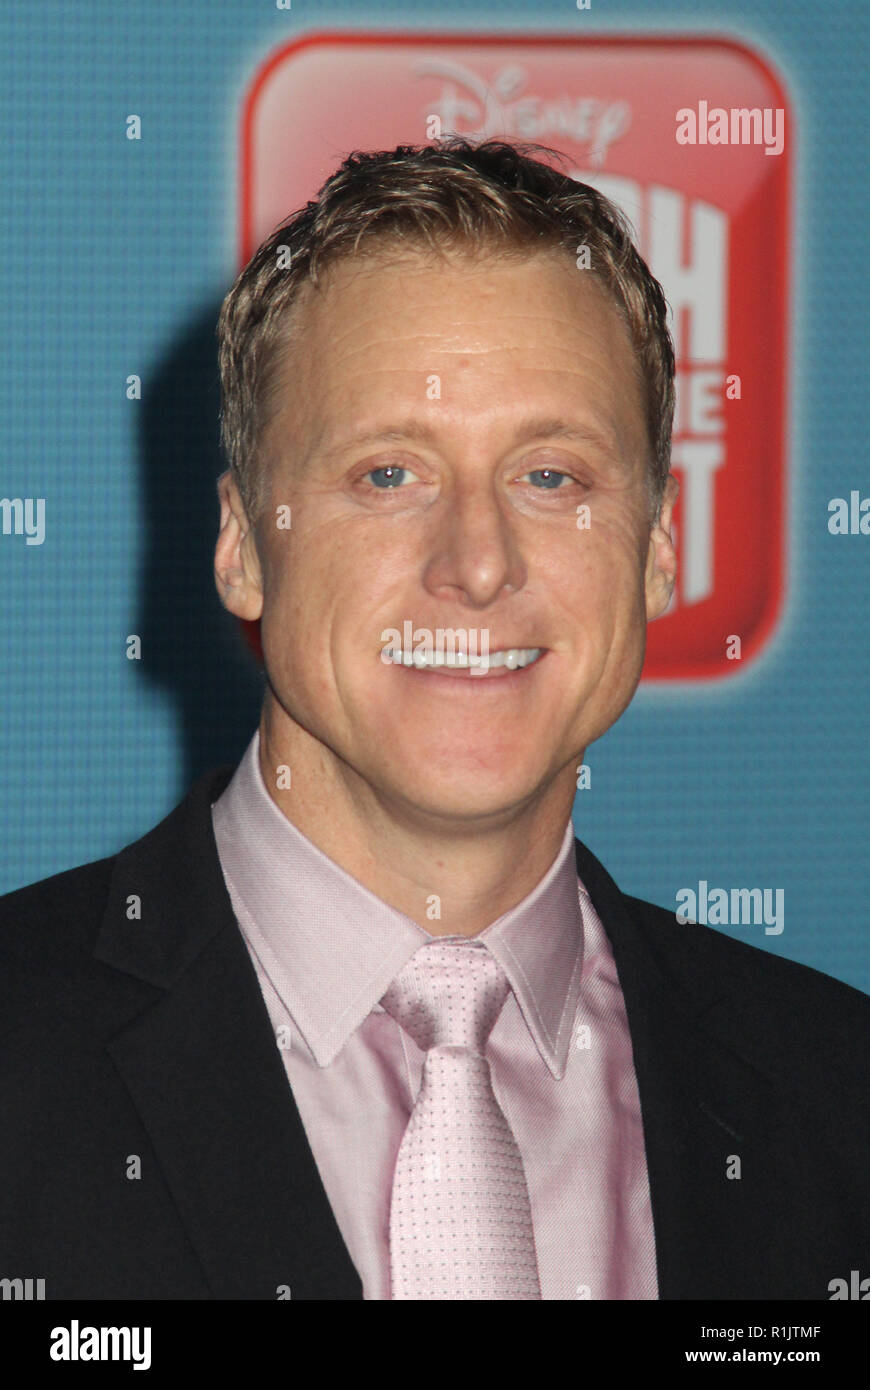 Alan Tudyk  11/05/2018 The World Premiere of 'Ralph Breaks the Internet' held at El Capitan Theatre in Los Angeles, CA   Photo: Cronos/Hollywood News - Stock Image